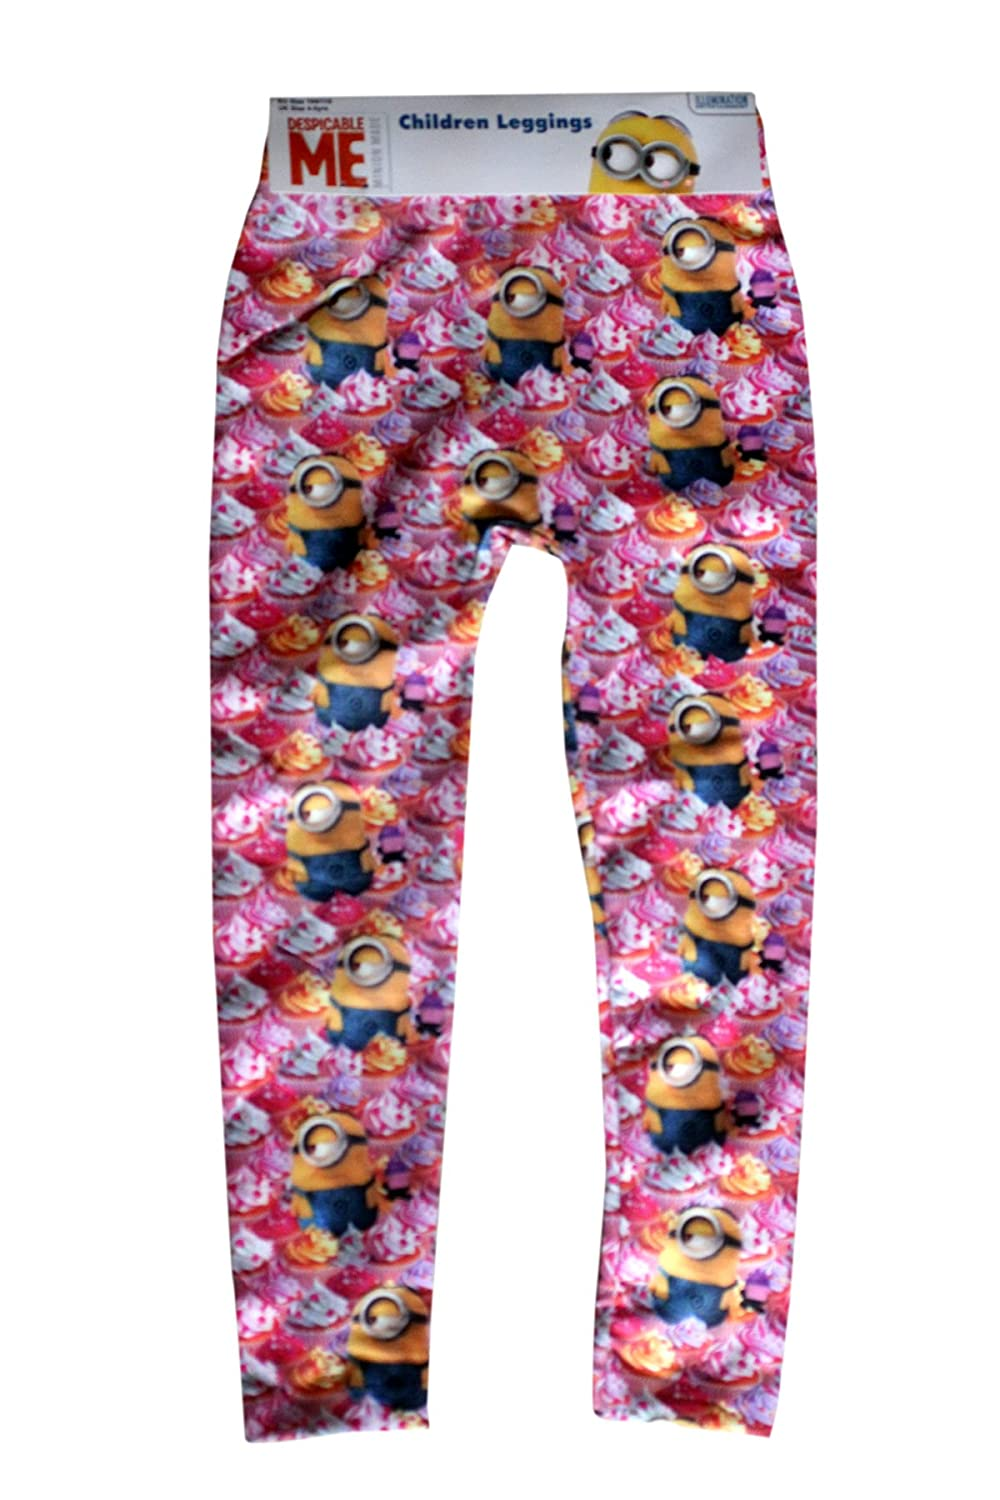 Despicable Me Minion Leggings Girls Skinny Trousers Bottoms Pyjama Size 2 – 9 Years